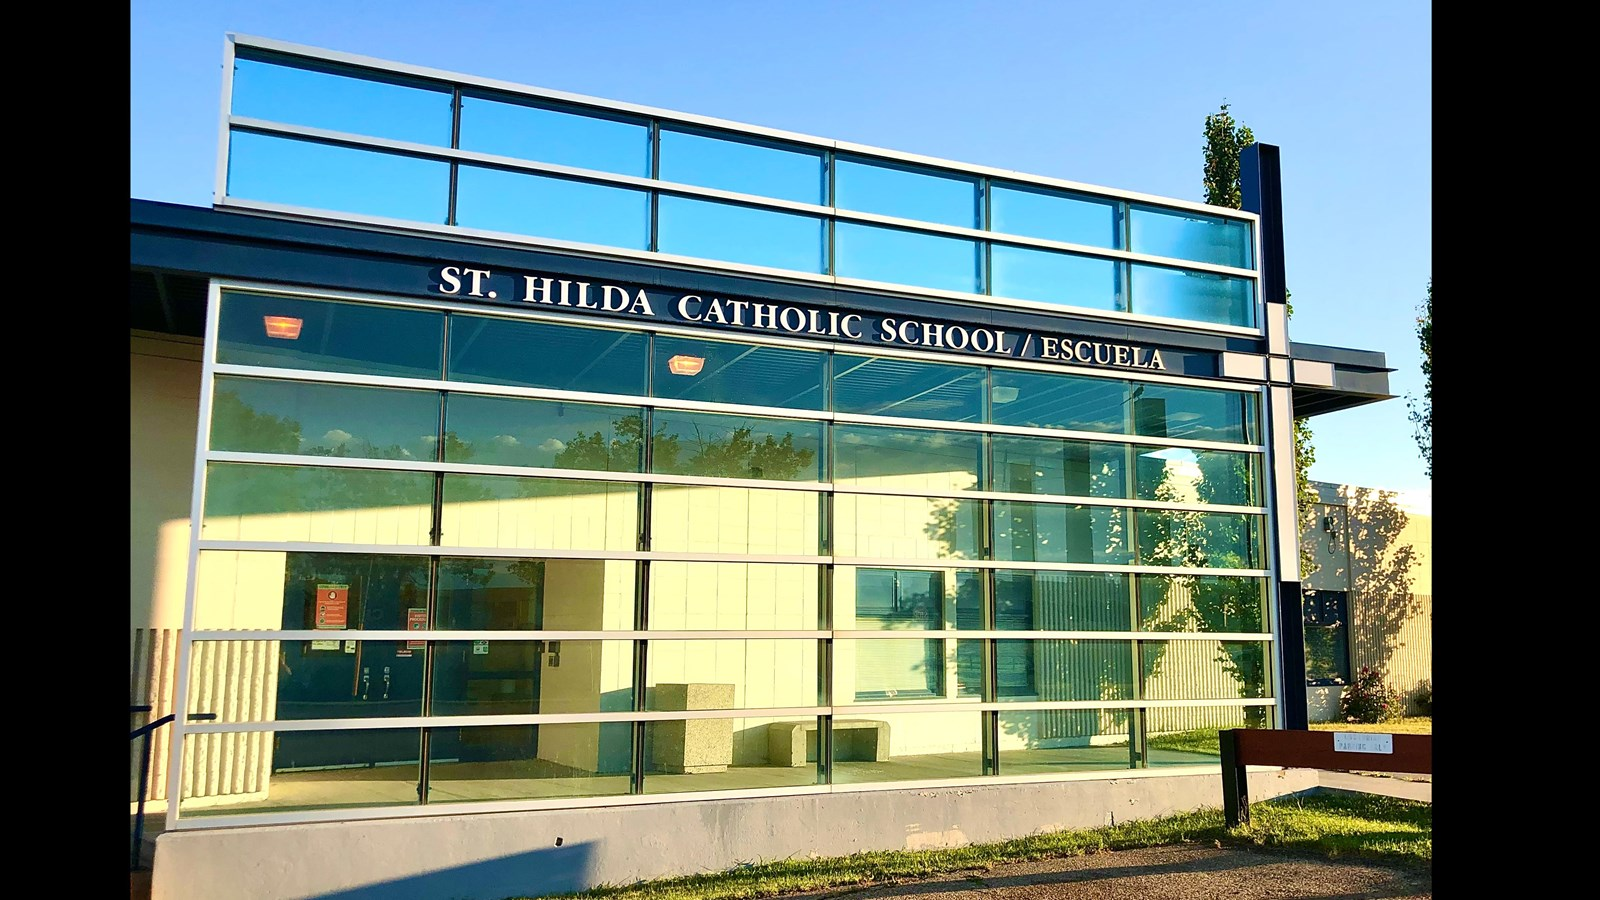 St. Hilda Catholic School